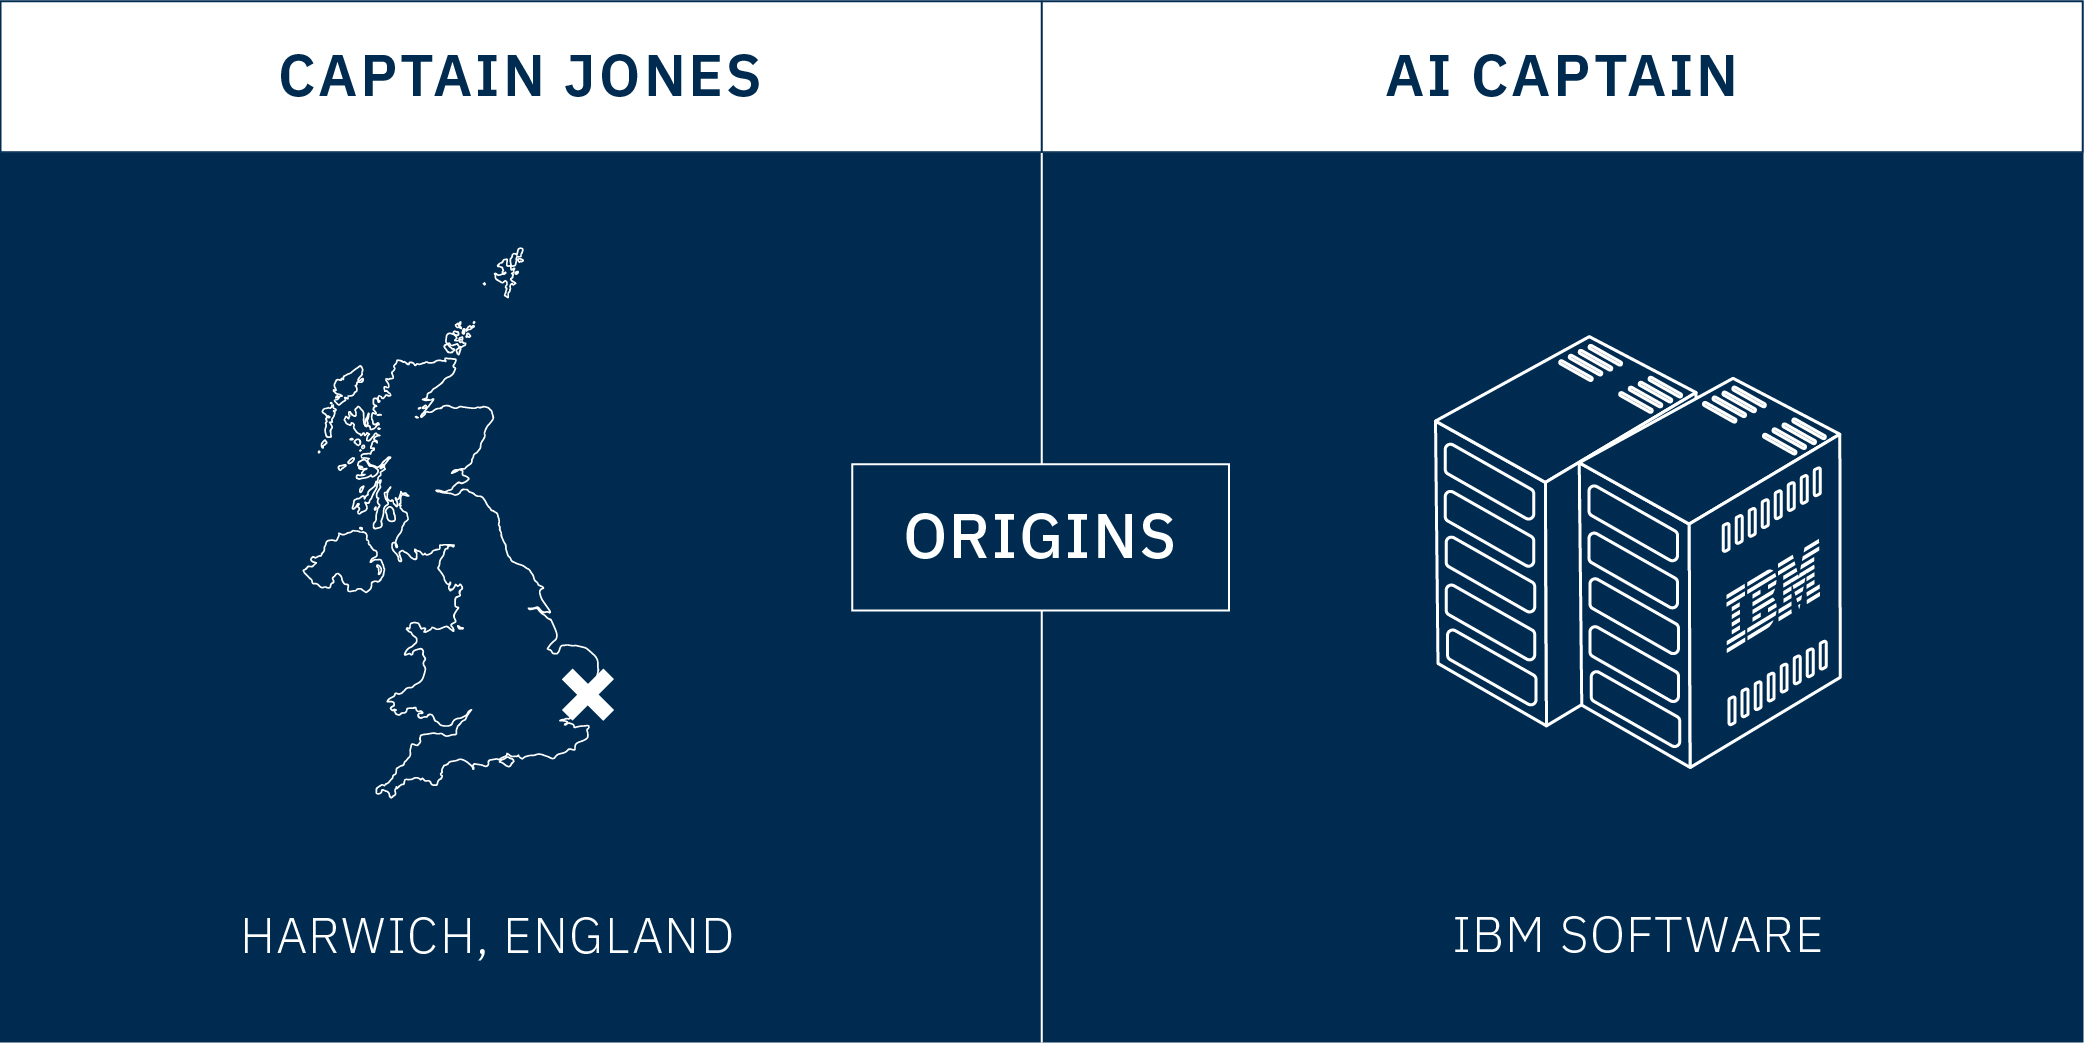 http://newsroom.ibm.com/image/IBM_Mayflower_03_Origins.jpg